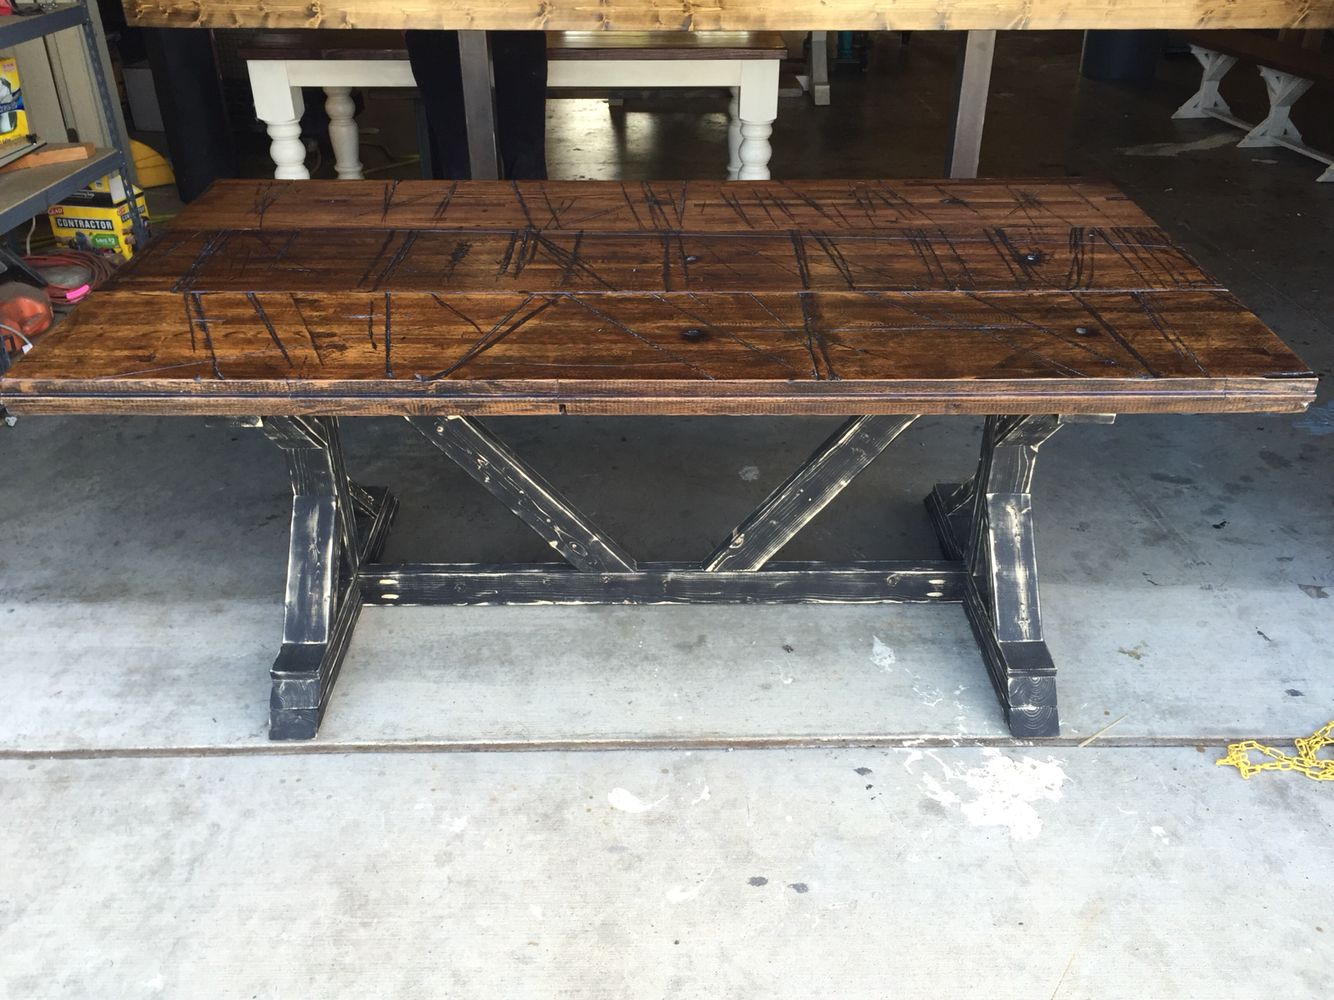 Charmant Reclaimed Railroad Car Wood Table Top With Distressed Base By Ross Rustic  Tables. Www.rosstables.com